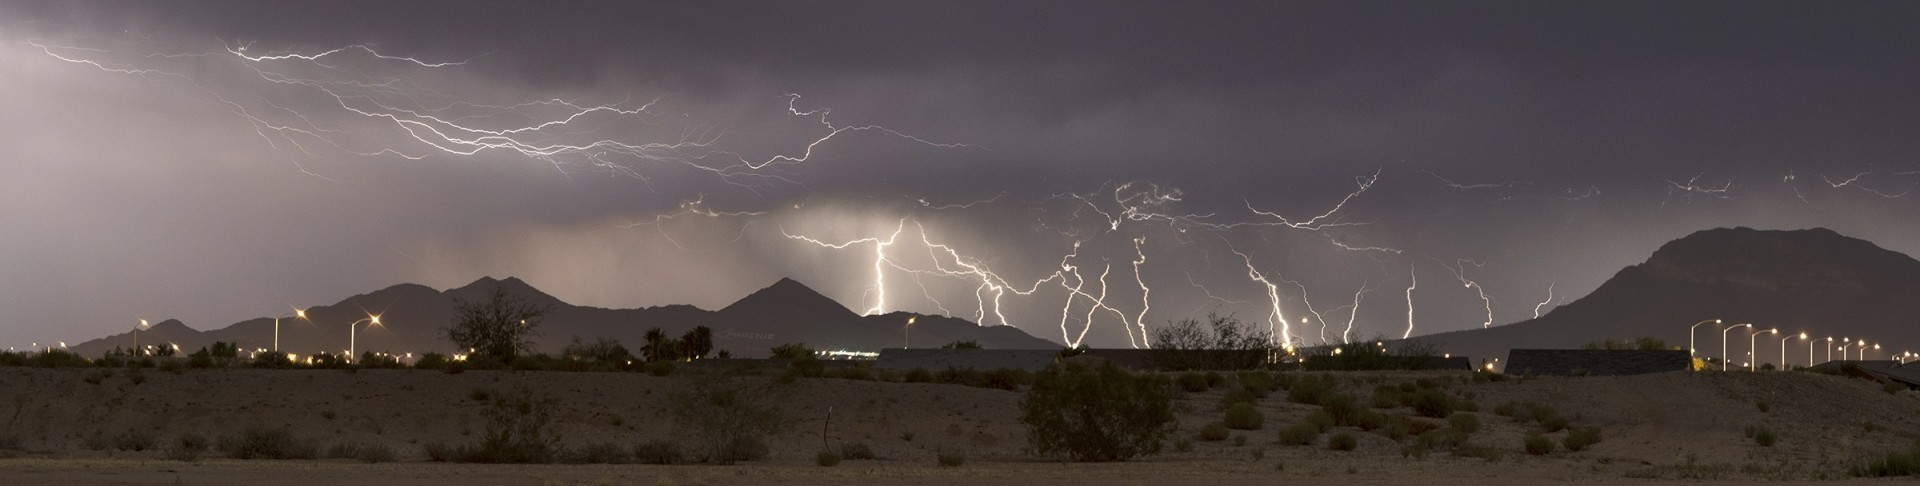 Summer Storm Lightning Picture